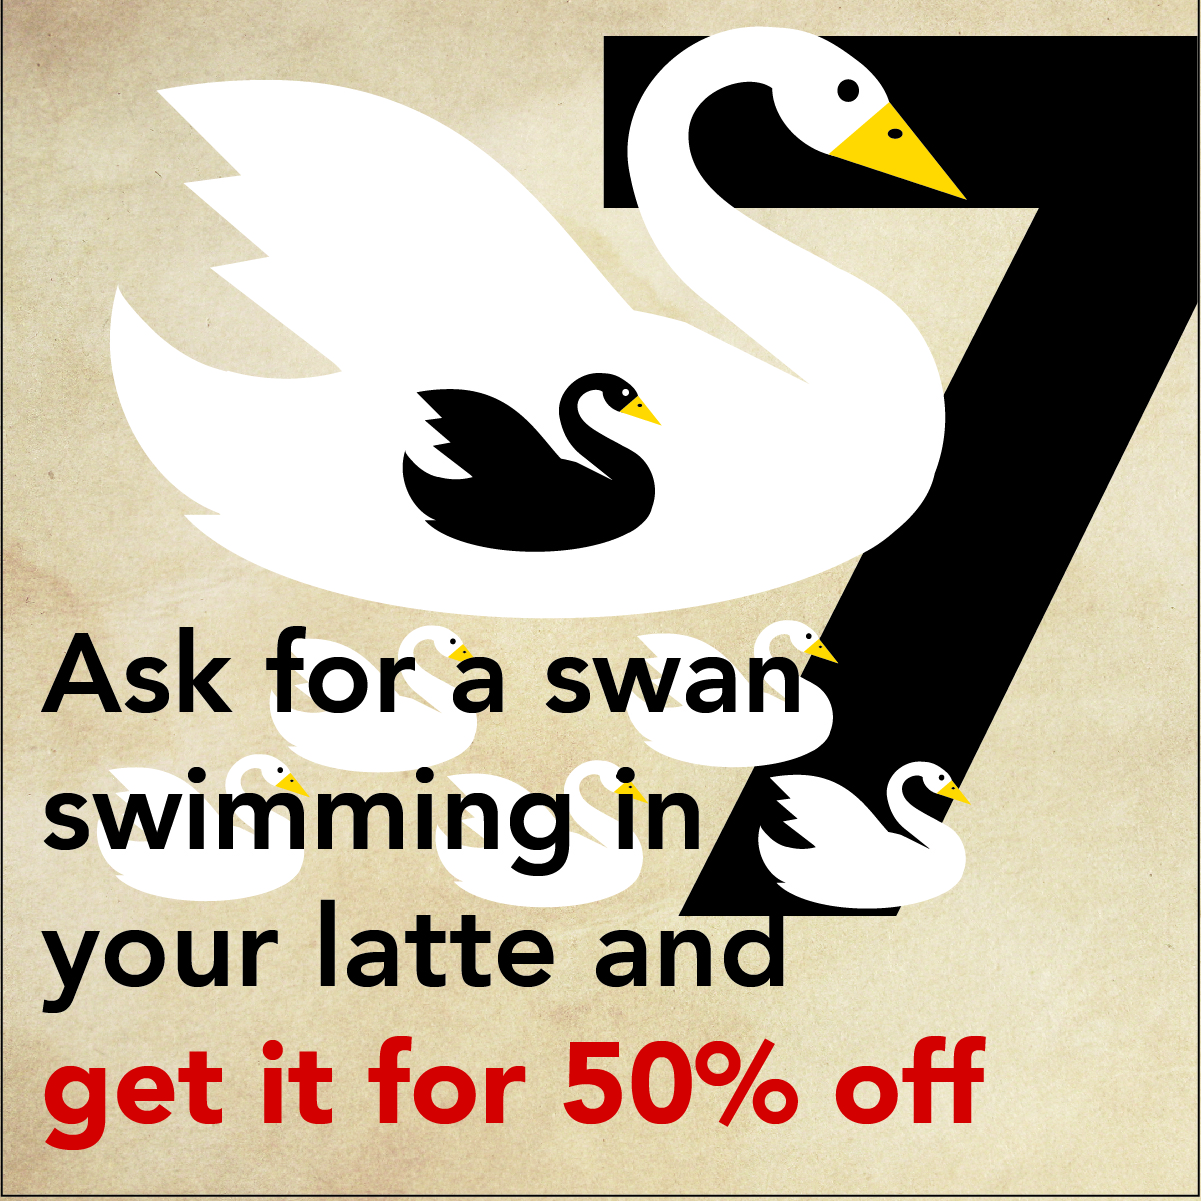 DEC. 18 -  7 SWANS A SWIMMING  Ask for a cocoa or cinnamon swan swimming in your latte and get your drink 50% off at  Vienna Coffee House  or Vienna Coffee at Regas.